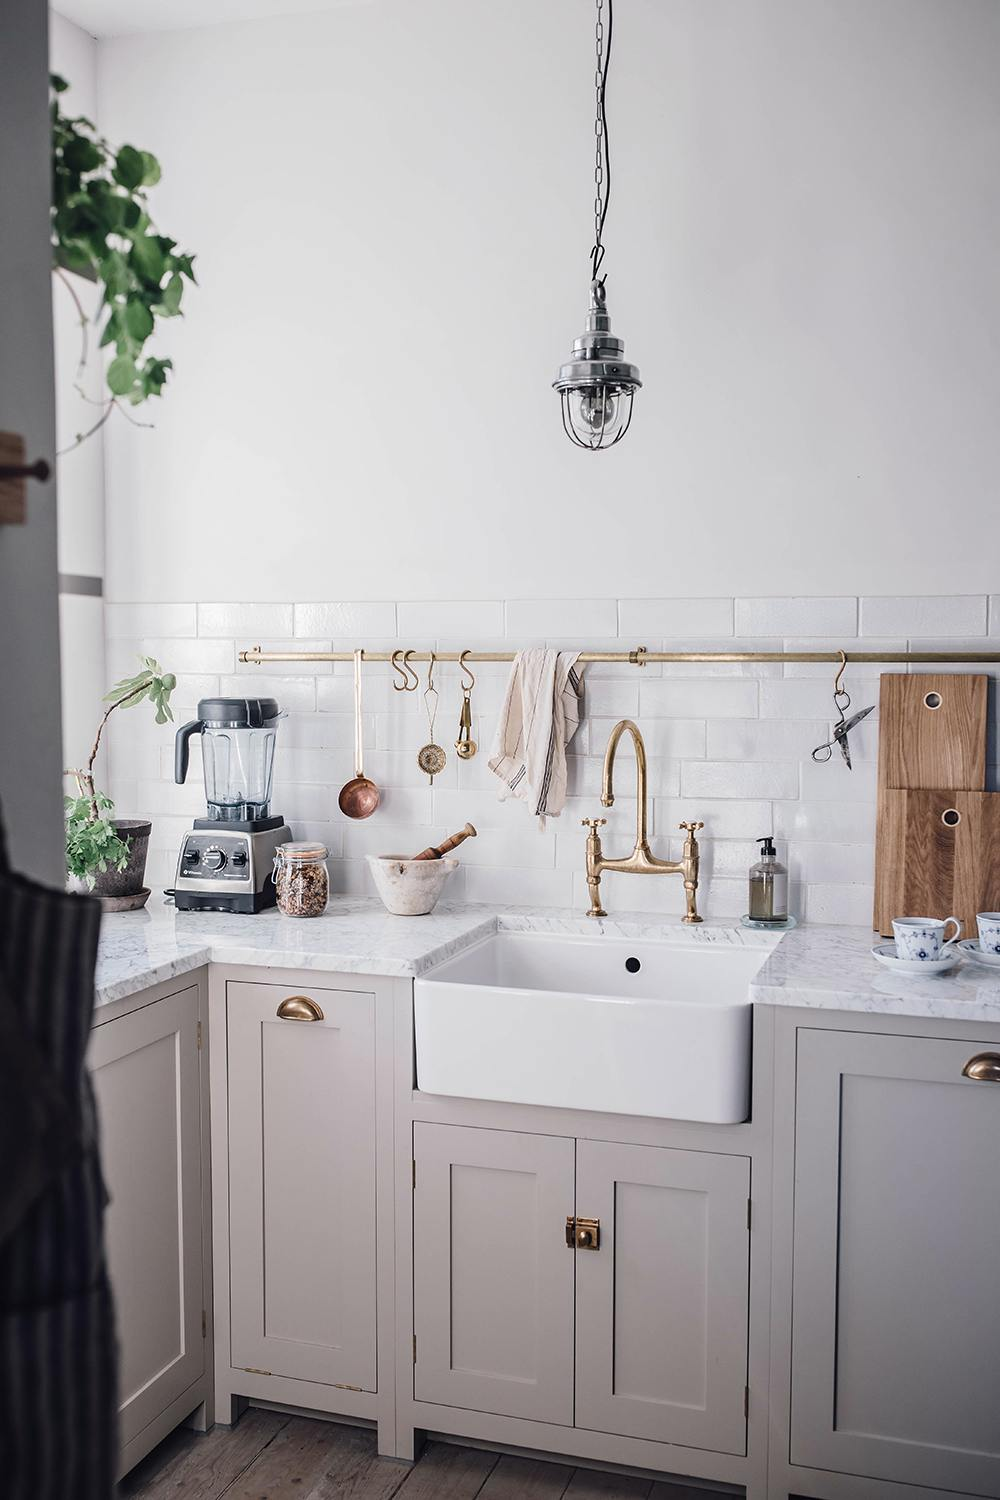 Our new DeVol Kitchen in the Countryside